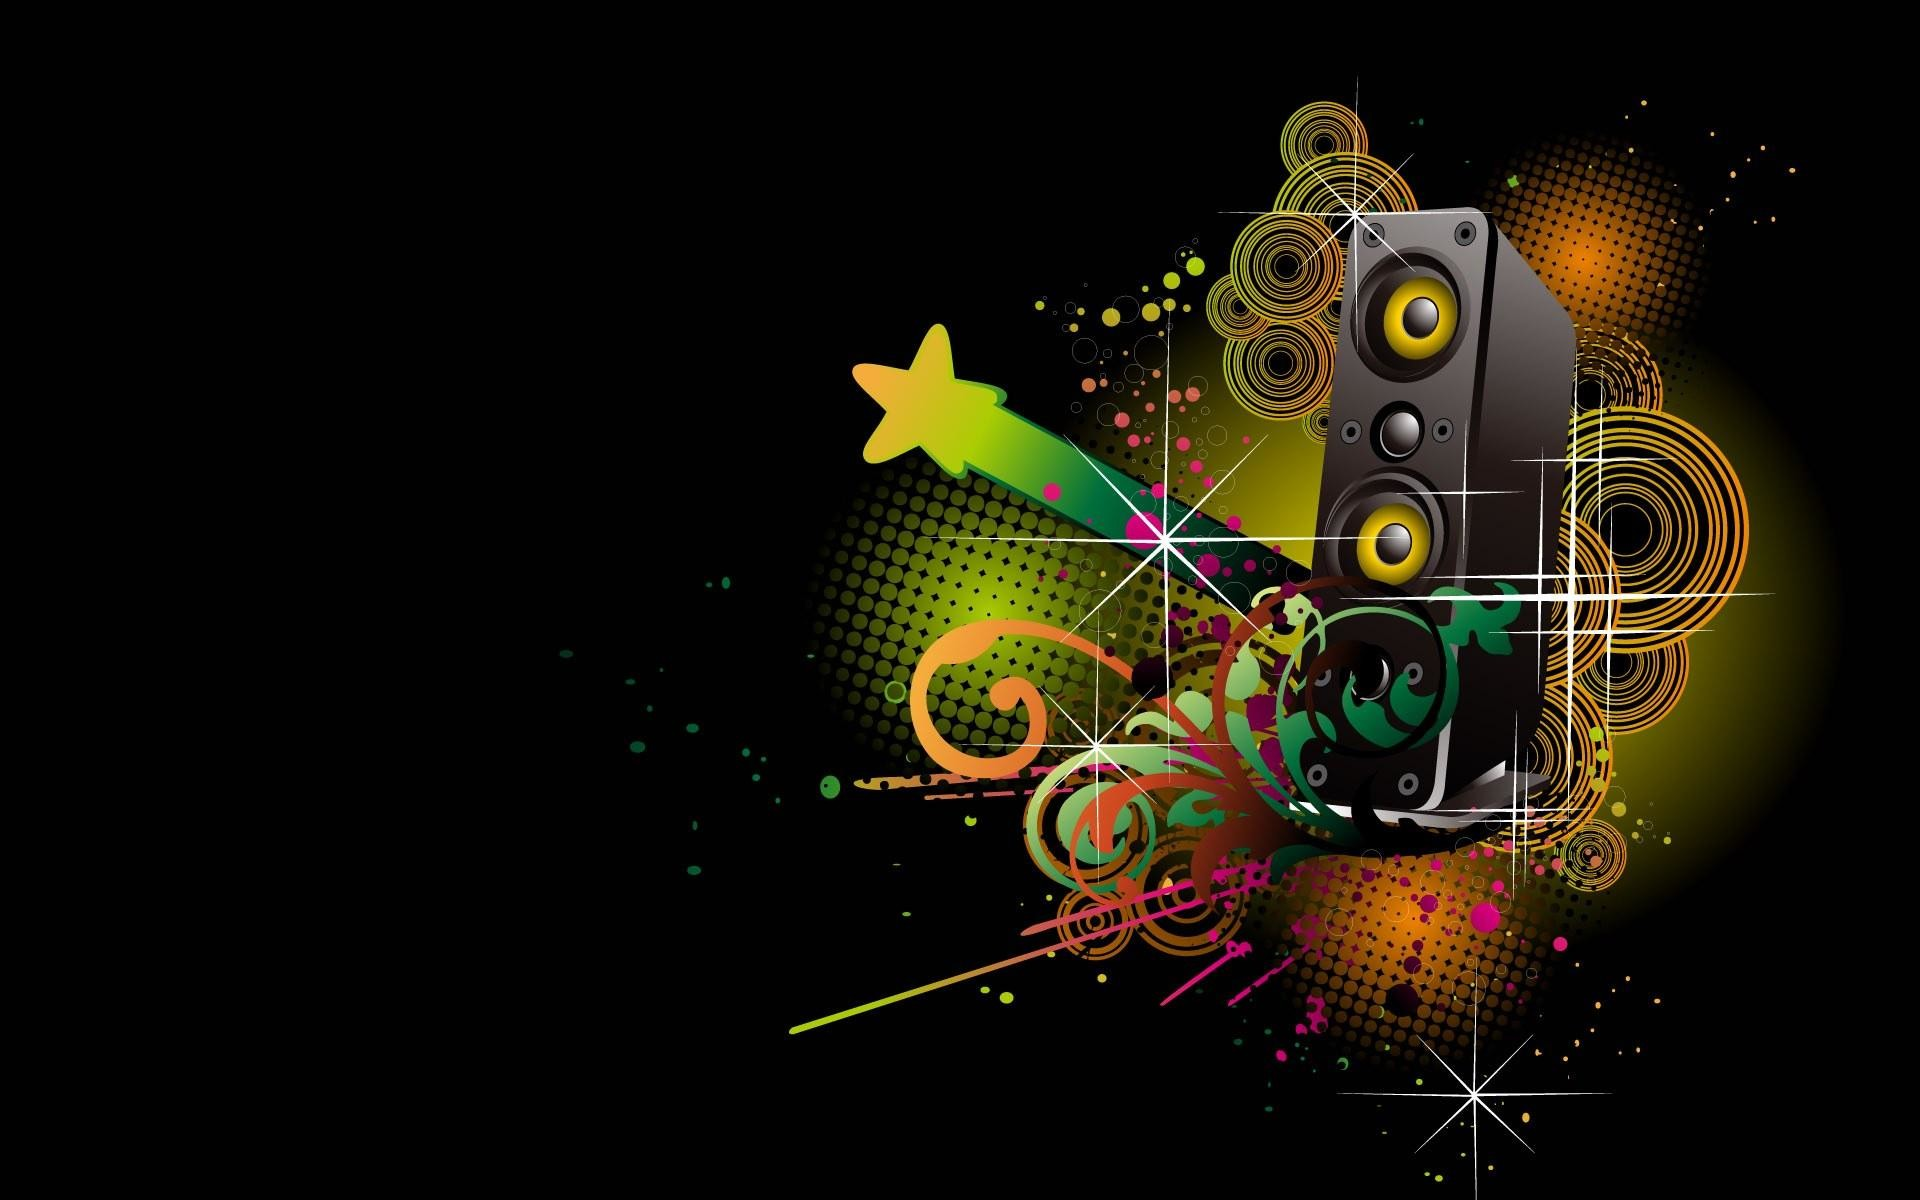 Free Dj Music Wallpapers HD Music Desktop Backgrounds – Follow Us On ..